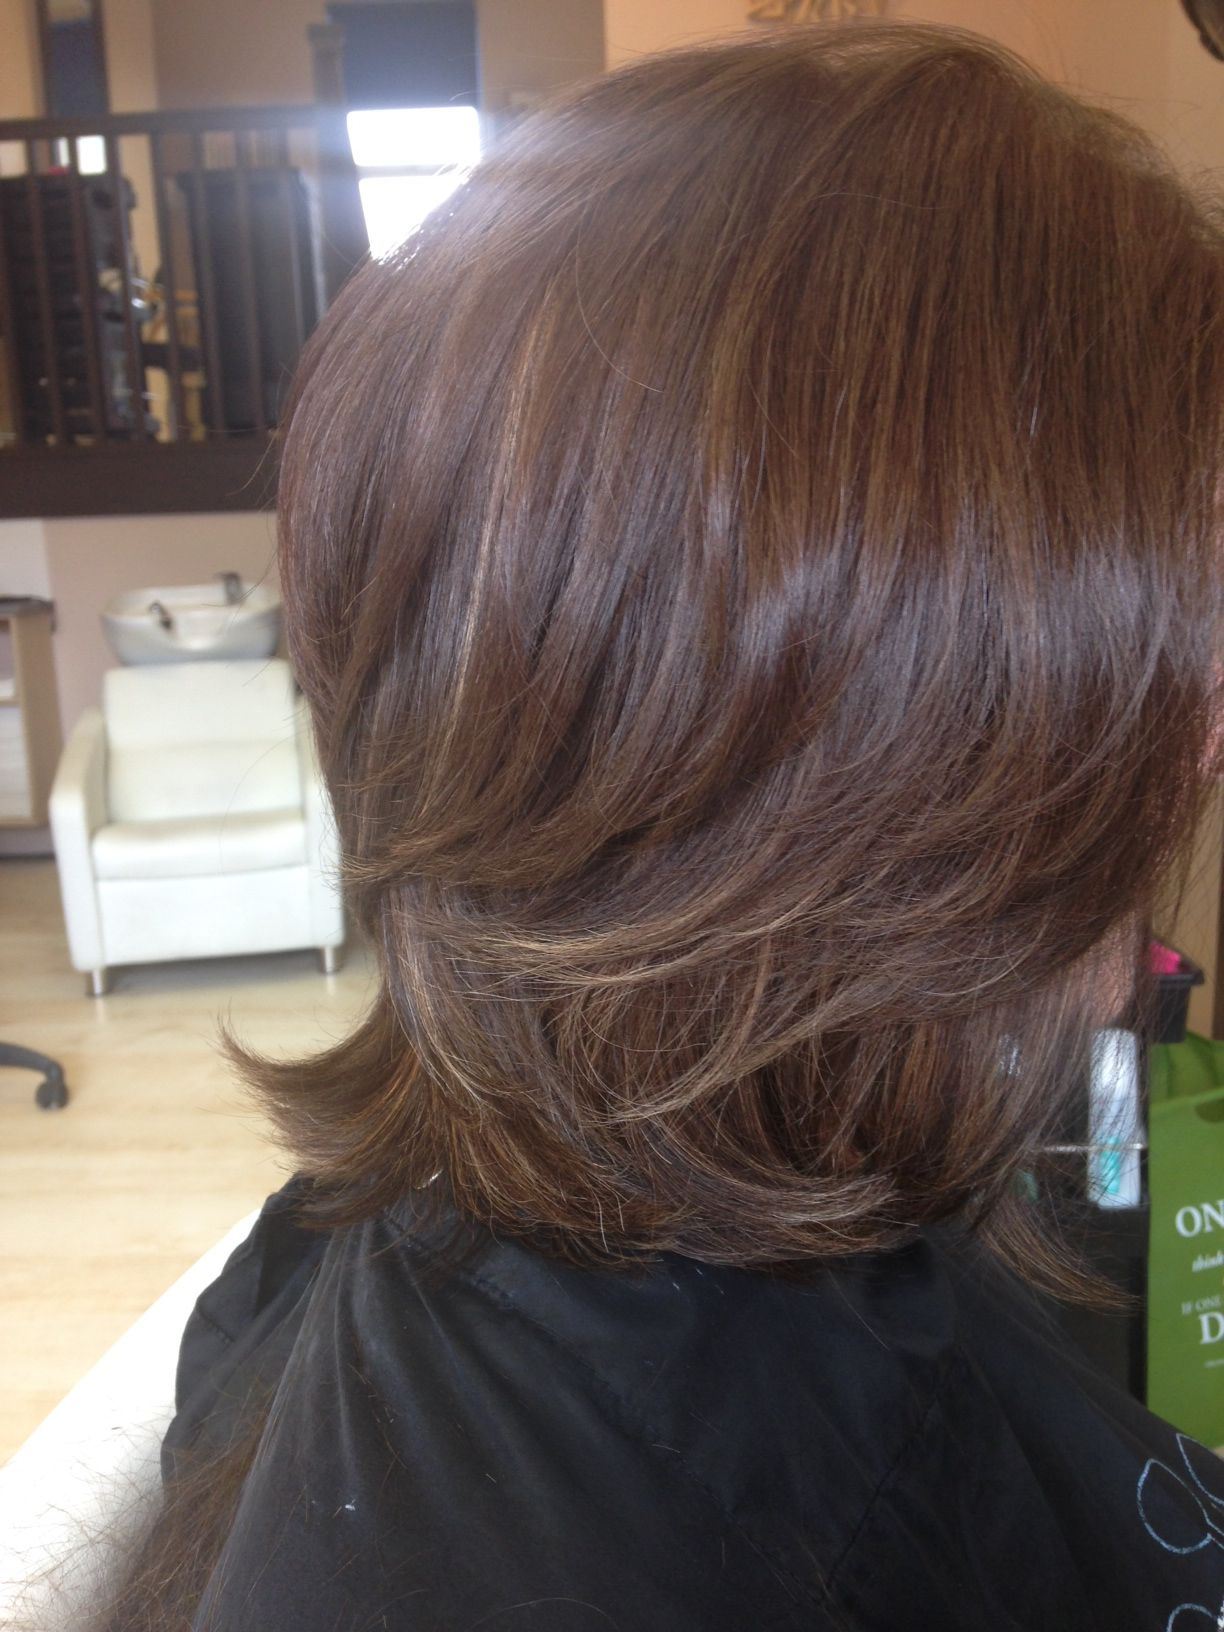 Tipped Soft Highlights In A Shoulder Length Cut With